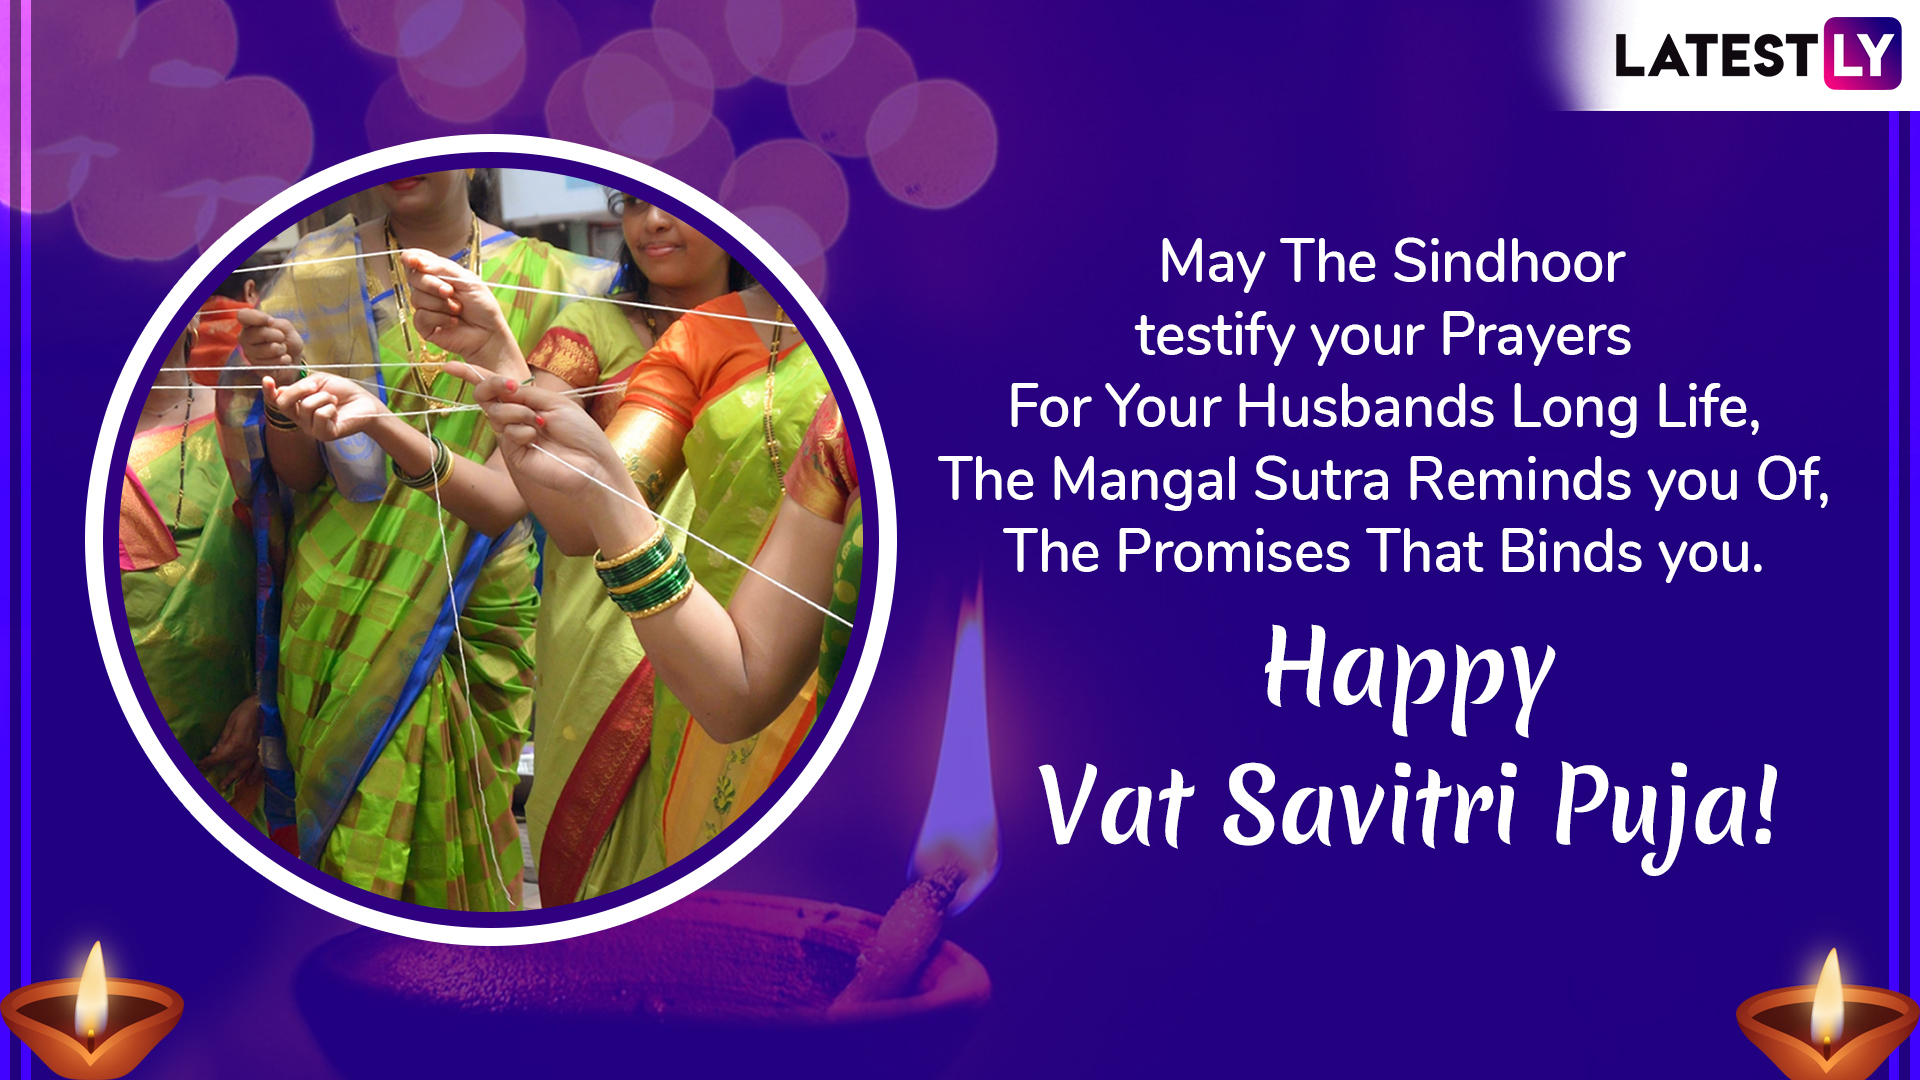 May The Sindhoor testify your Prayers For Your Husbands Long Life, The Mangal Sutra Reminds you Of, The Promises That Binds you. Happy Vat Savitri Puja!  IMAGES, GIF, ANIMATED GIF, WALLPAPER, STICKER FOR WHATSAPP & FACEBOOK